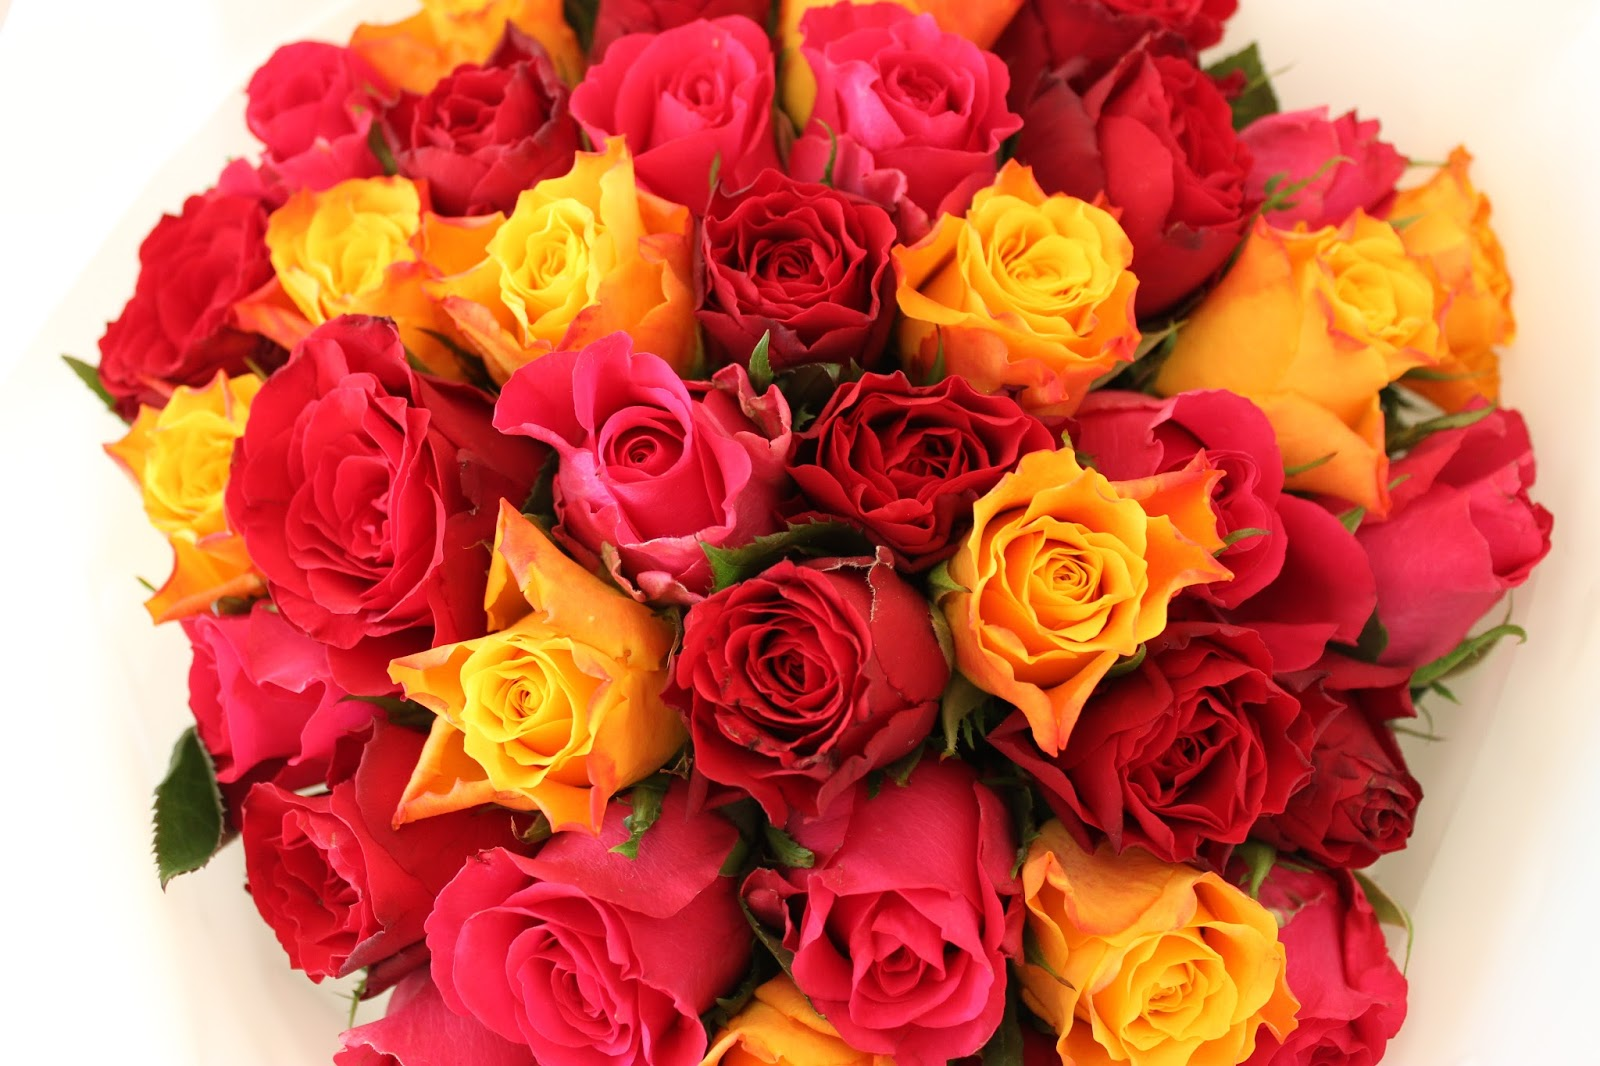 A picture of the Appleyard London 40 Rose Bouquet